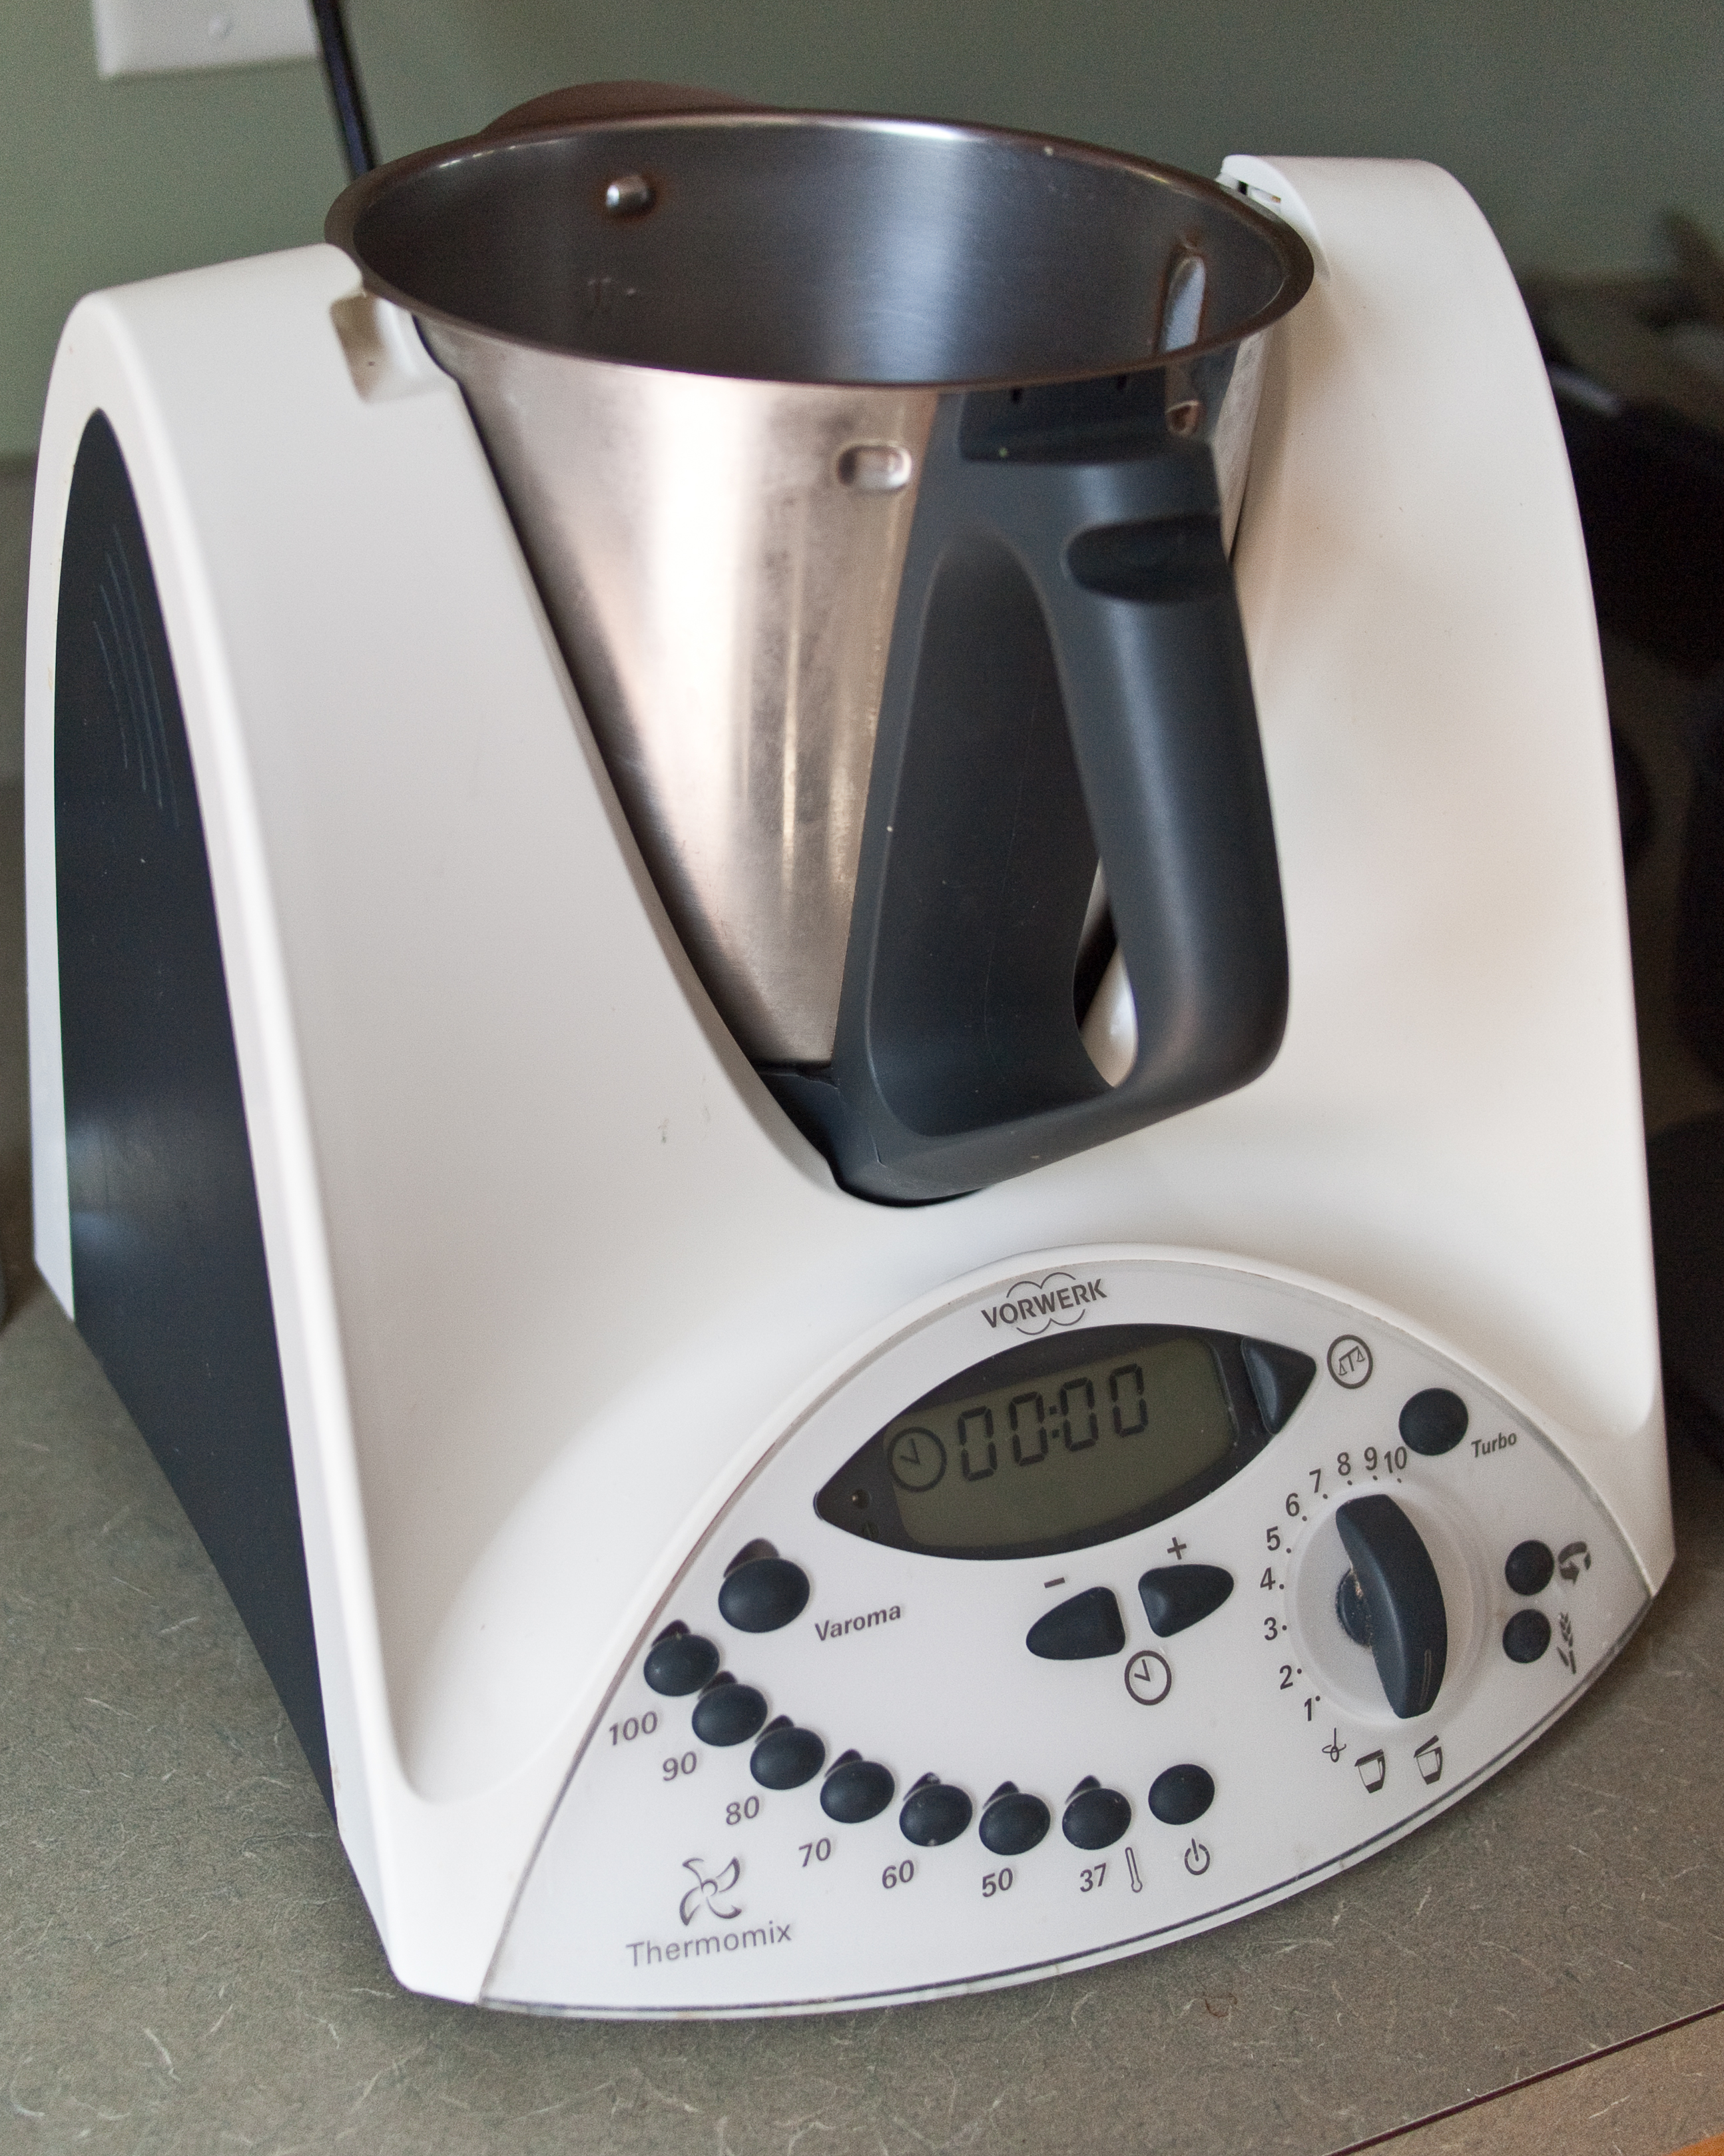 File:Thermomix.jpg - Wikimedia Commons